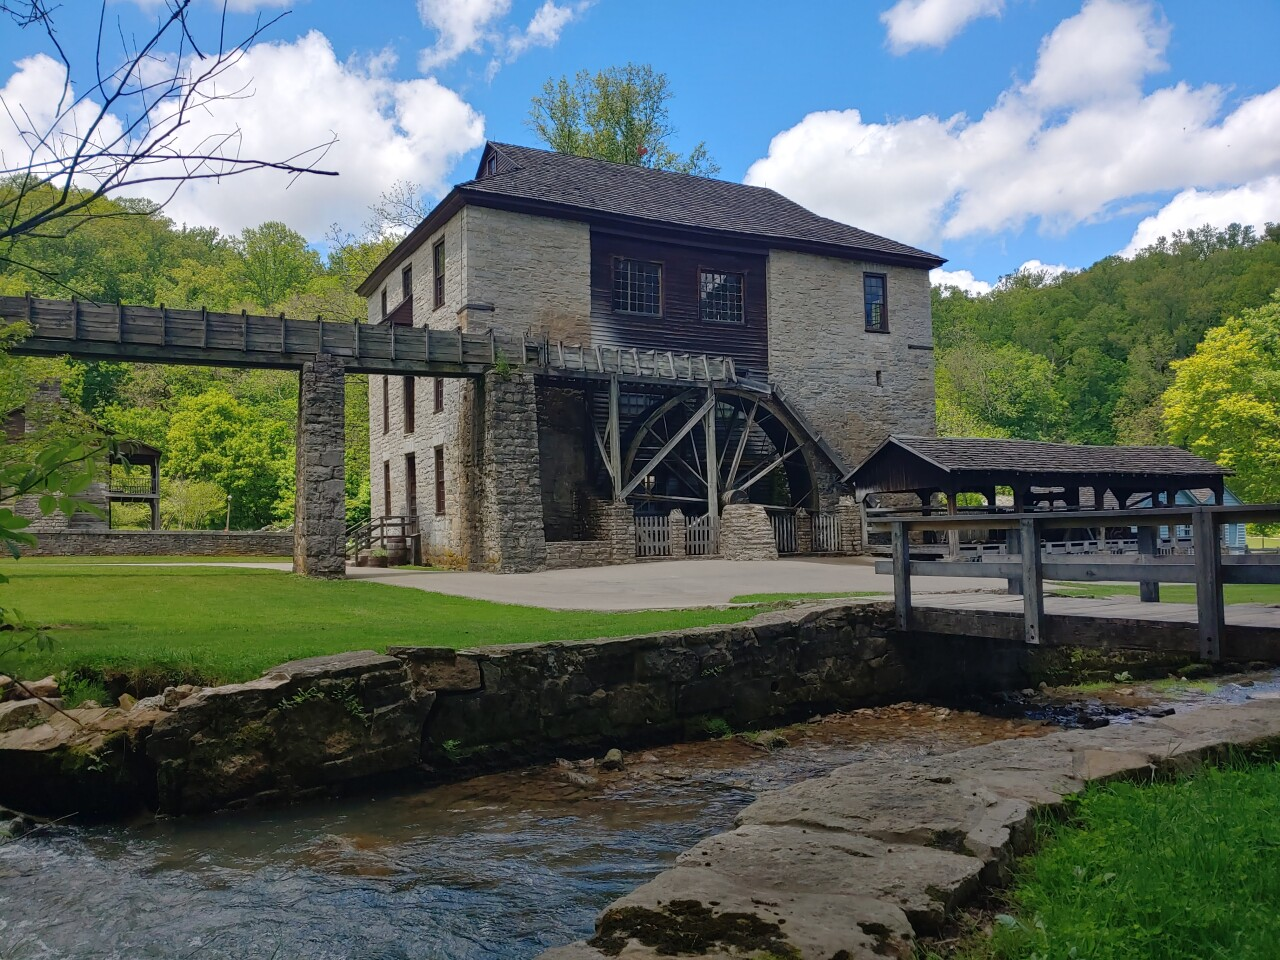 This photo shows a grist mill at Spring Mill State Park in Indiana.